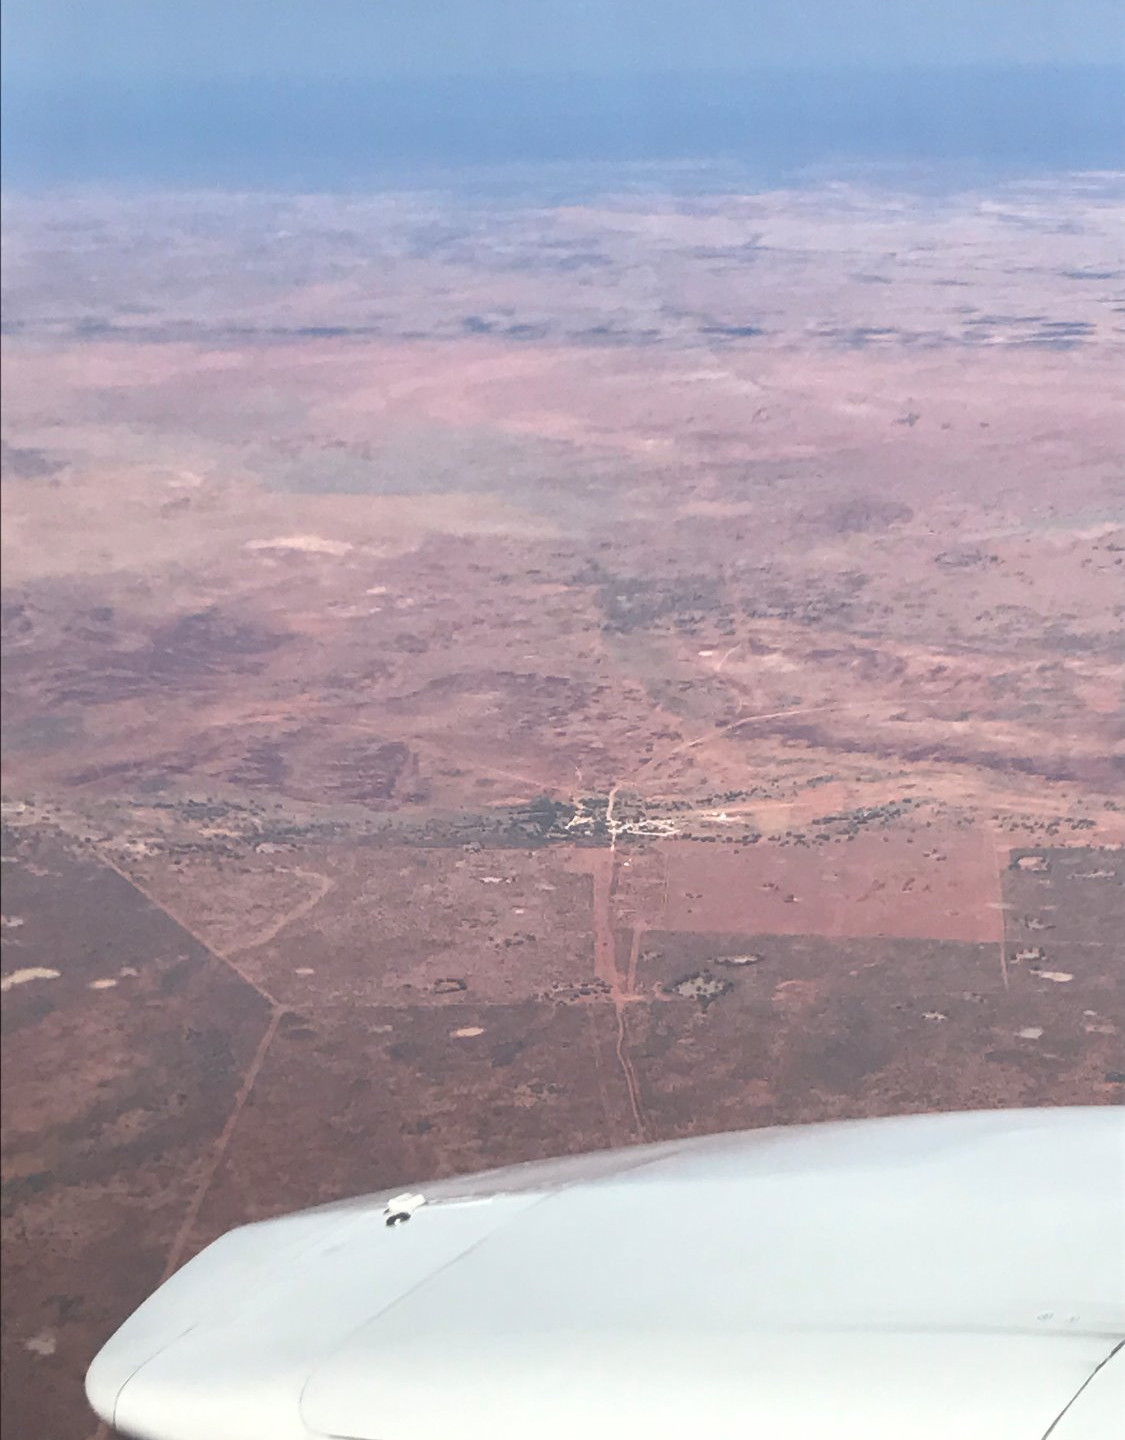 Tibooburra from the air